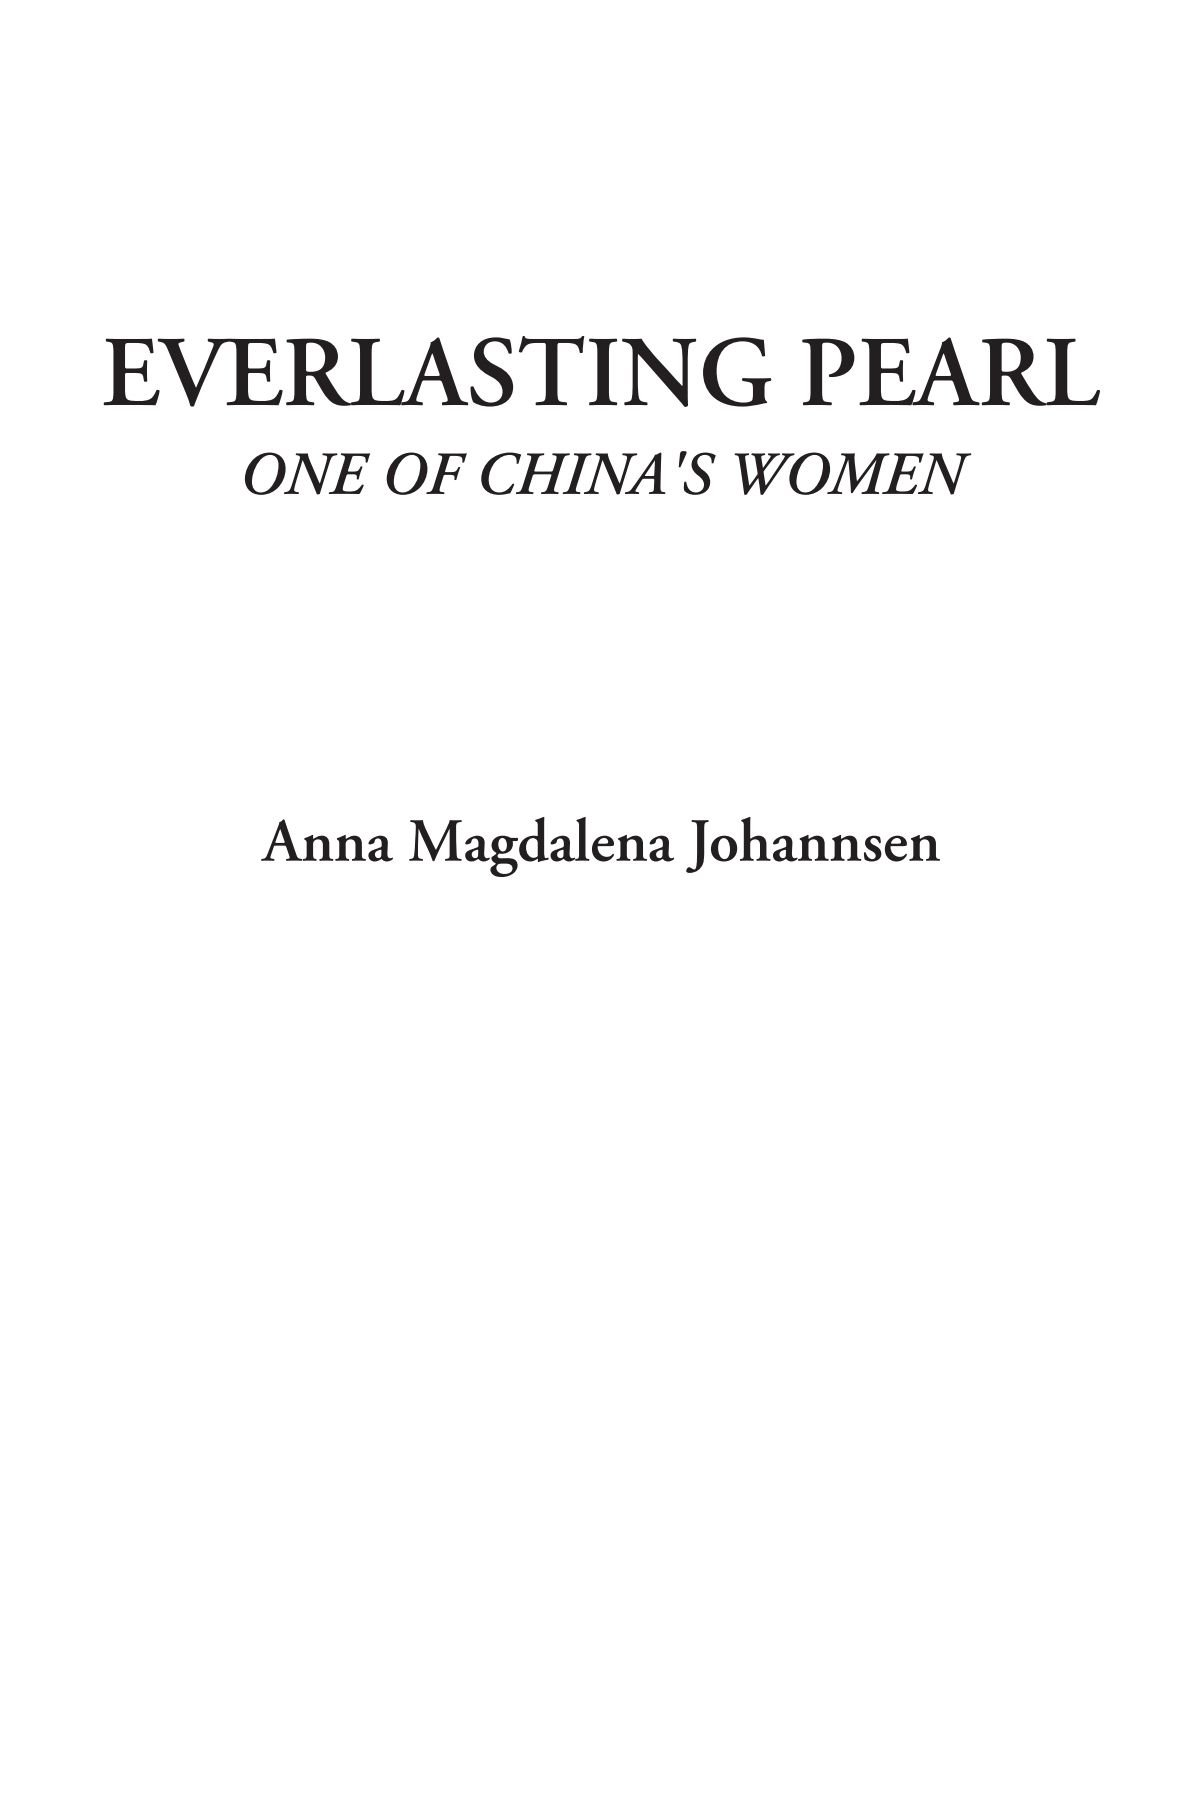 Everlasting Pearl (One of China's Women) pdf